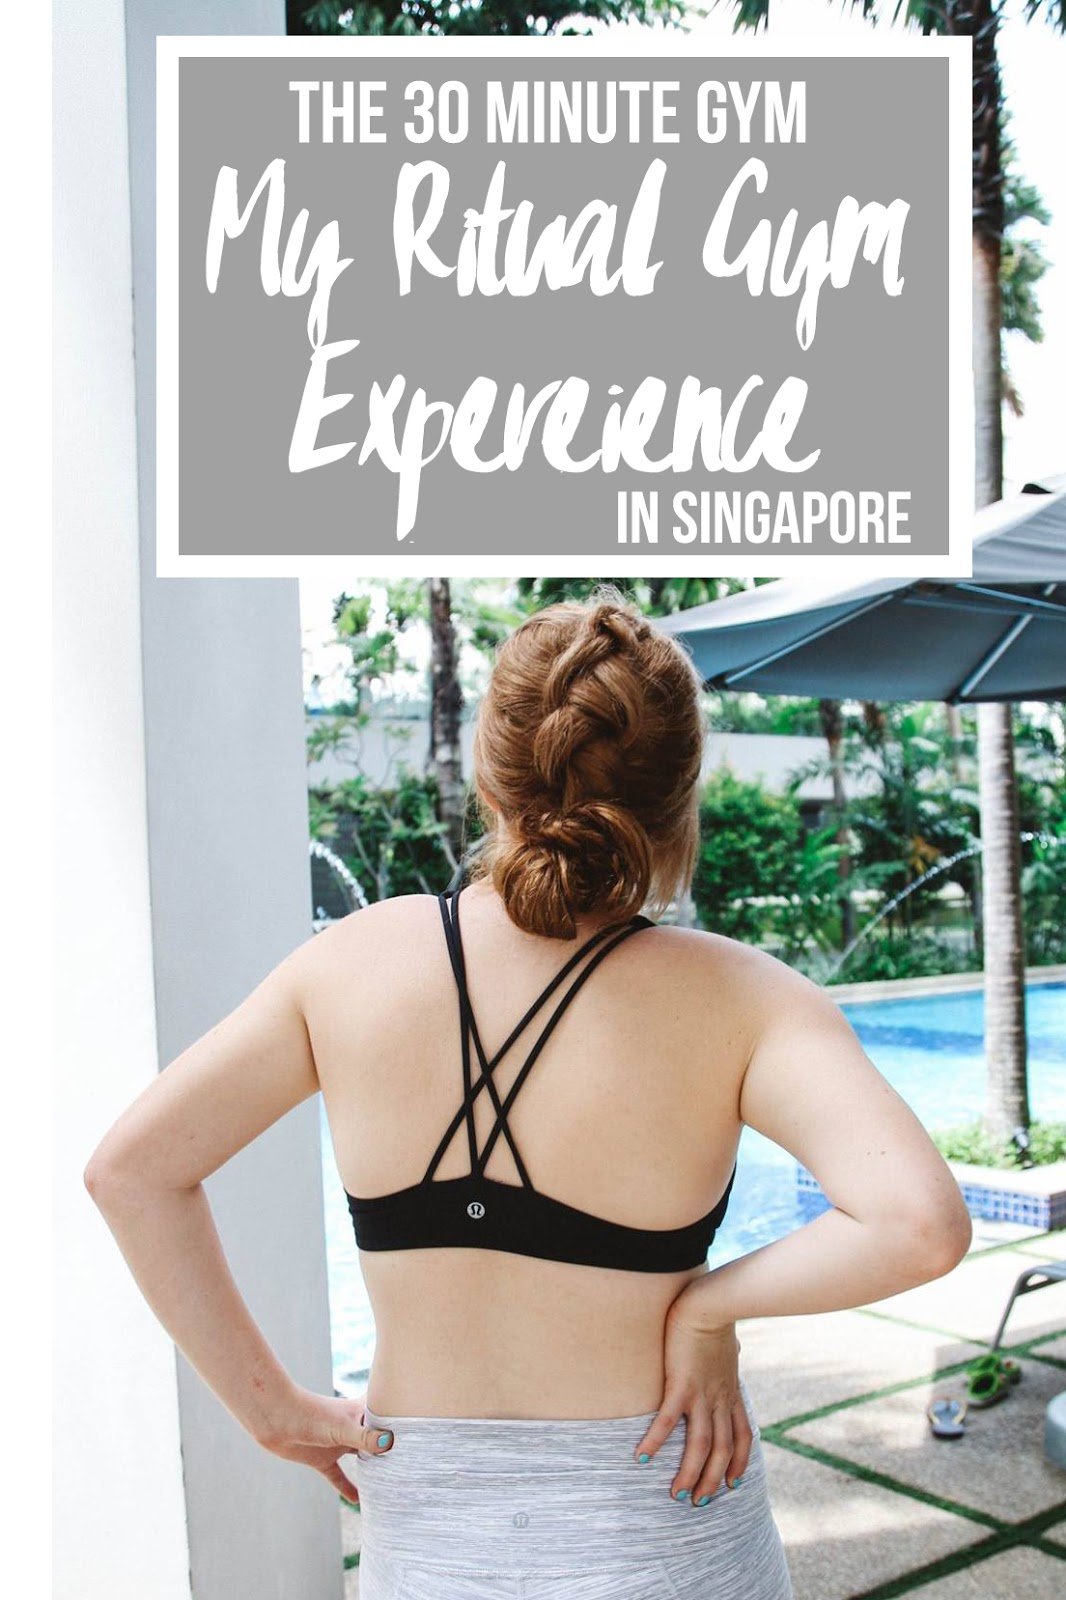 The 30 Minute Gym: My Ritual Gym Experience in Singapore